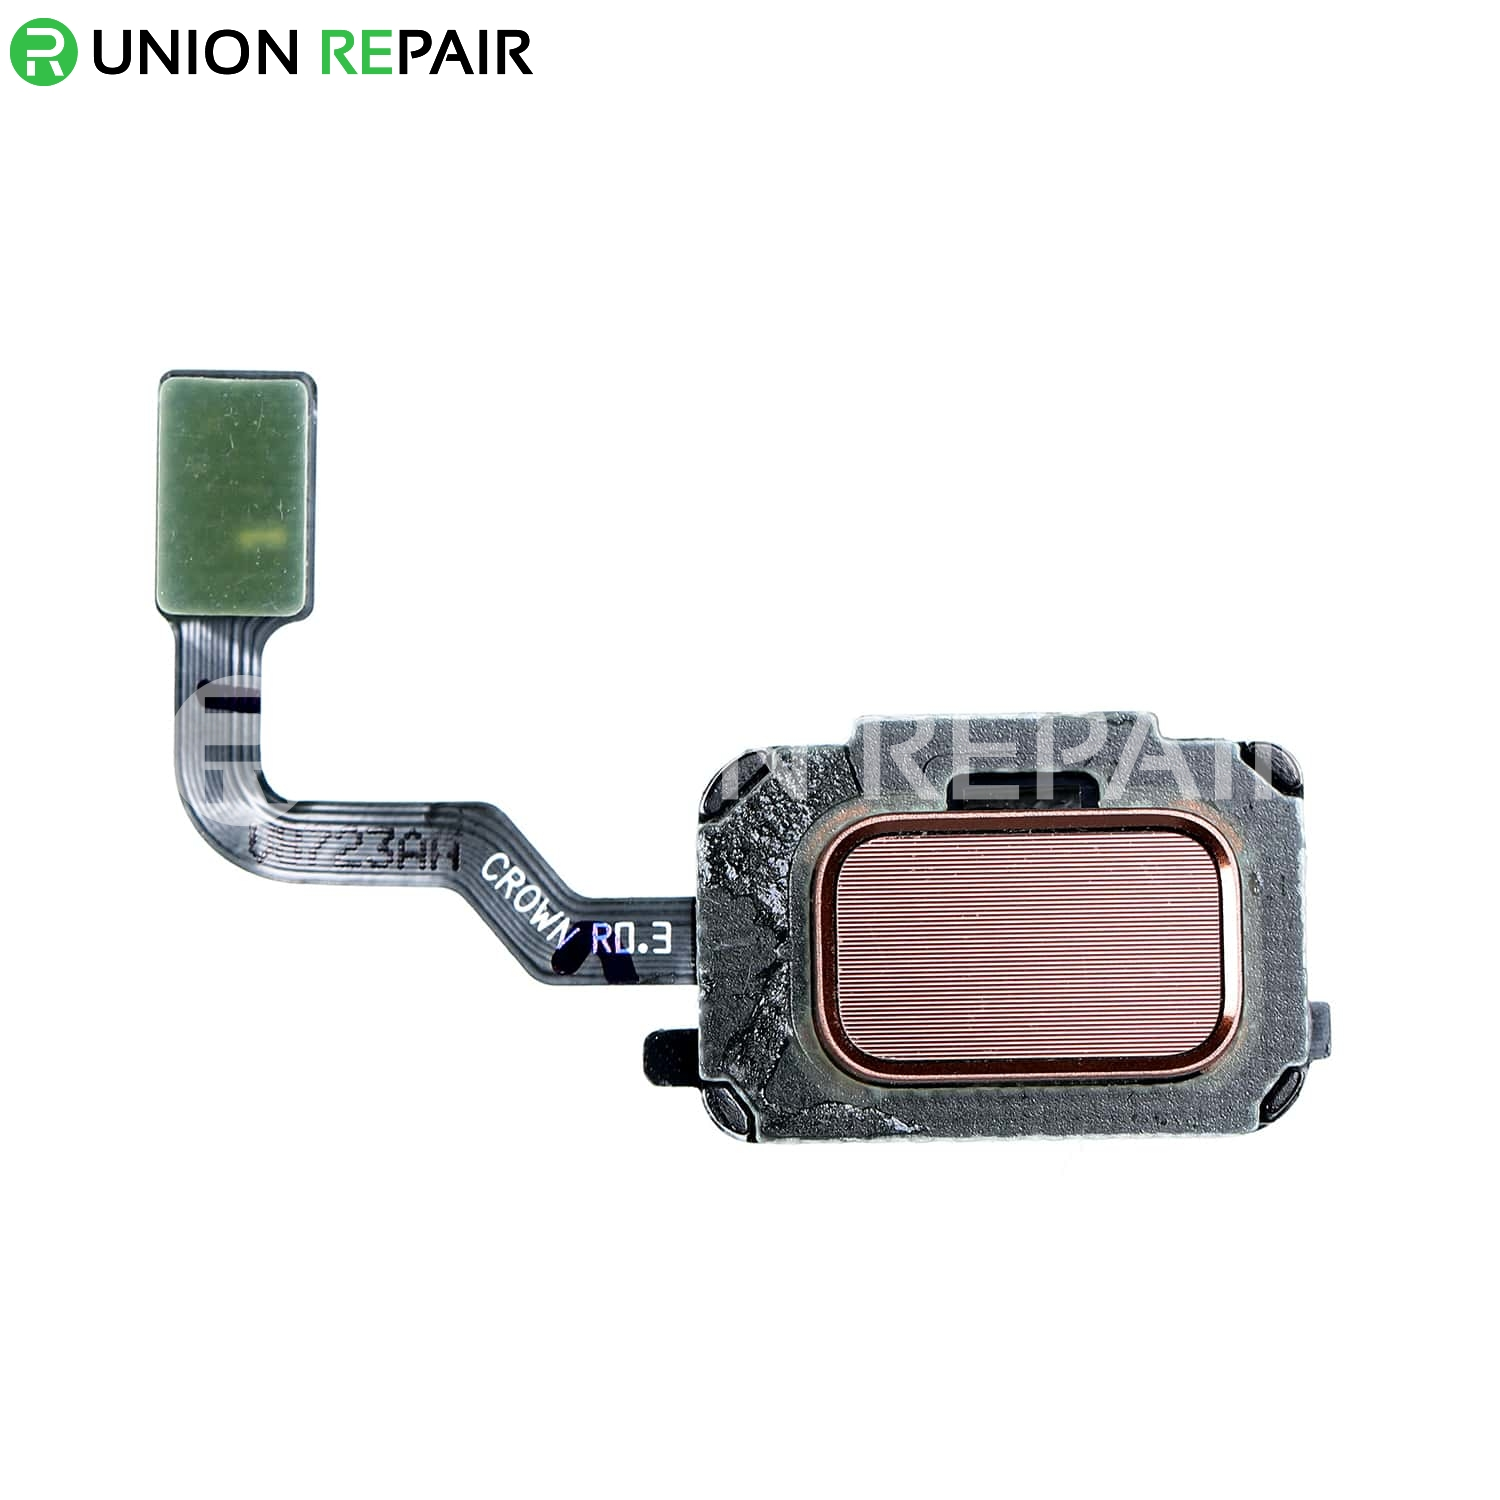 Replacement for Samsung Galaxy Note 9 Home Button Flex Cable - Gold